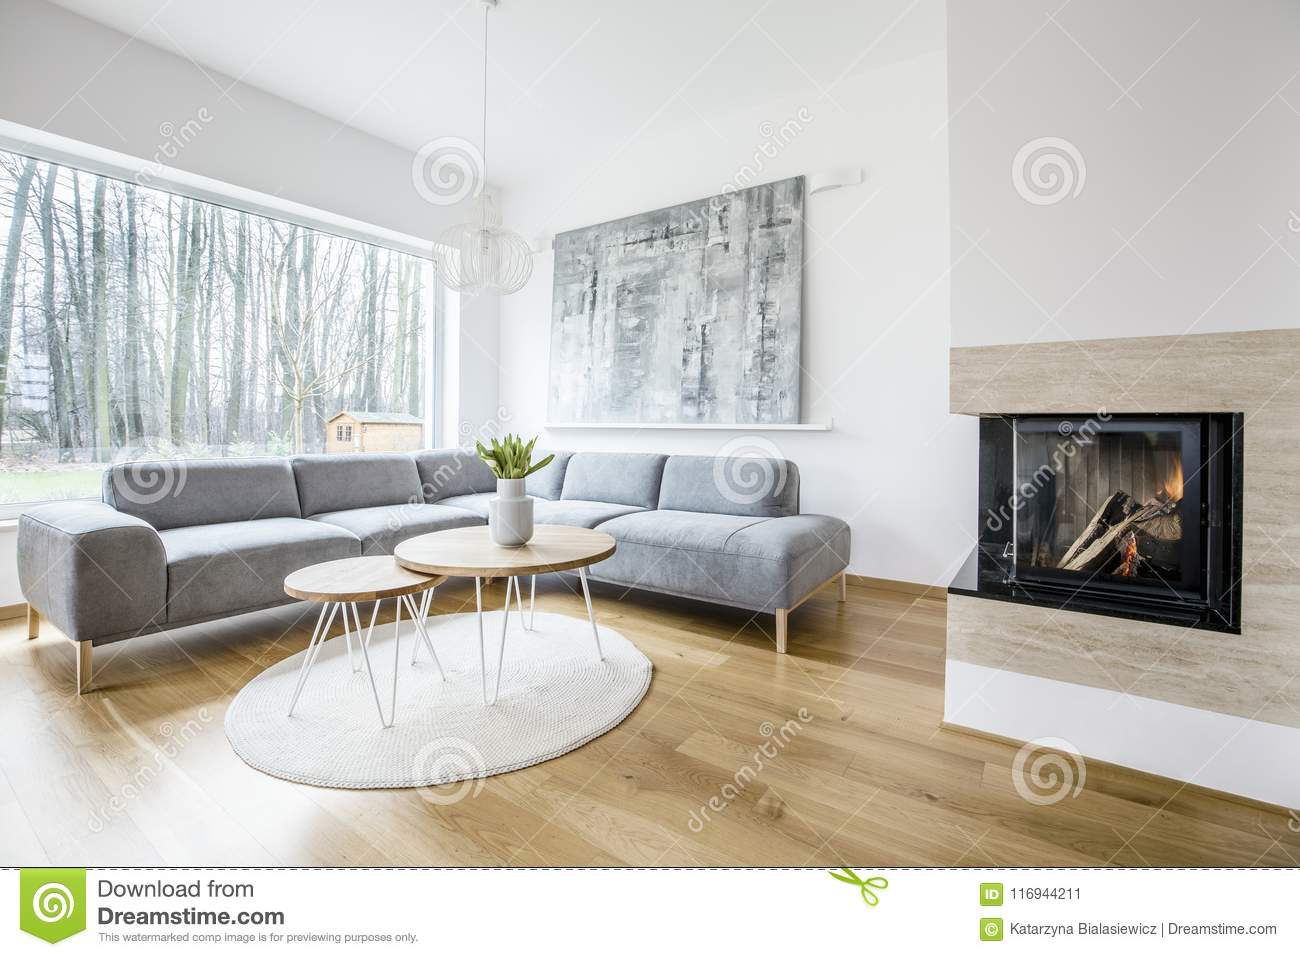 733 Round Rug Living Room Photos Free Royalty Free Stock Photos From Dreamstime